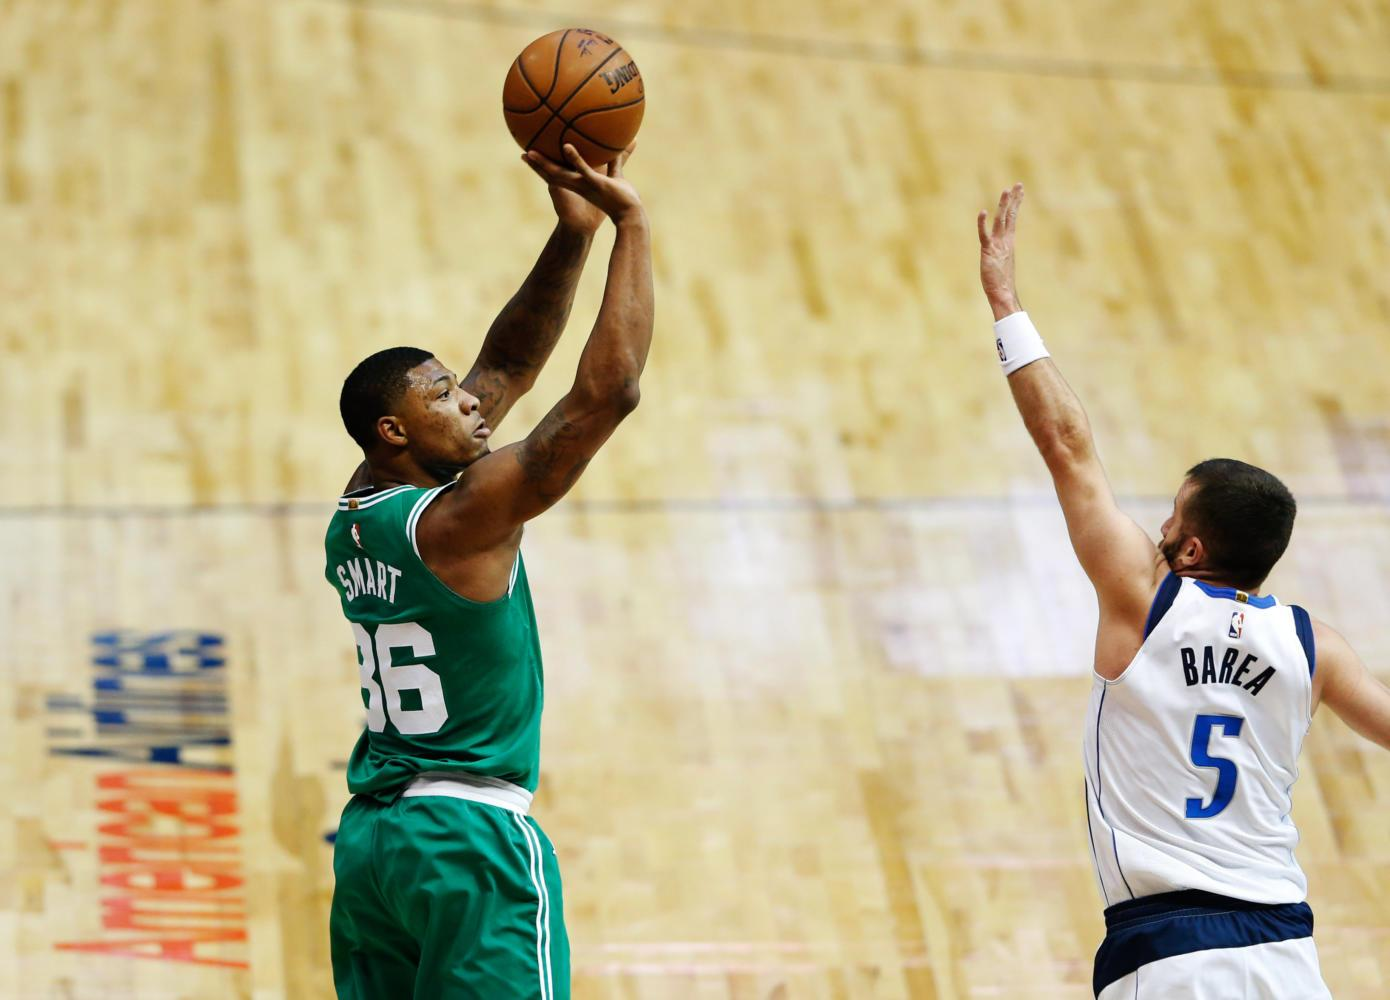 The Boston Celtics' Marcus Smart (36) shoots over the Dallas Mavericks J.J. Barea (5) during the first half at the American Airlines Center in Dallas Nov. 20, 2017. (Vernon Bryant/Dallas Morning News/TNS)